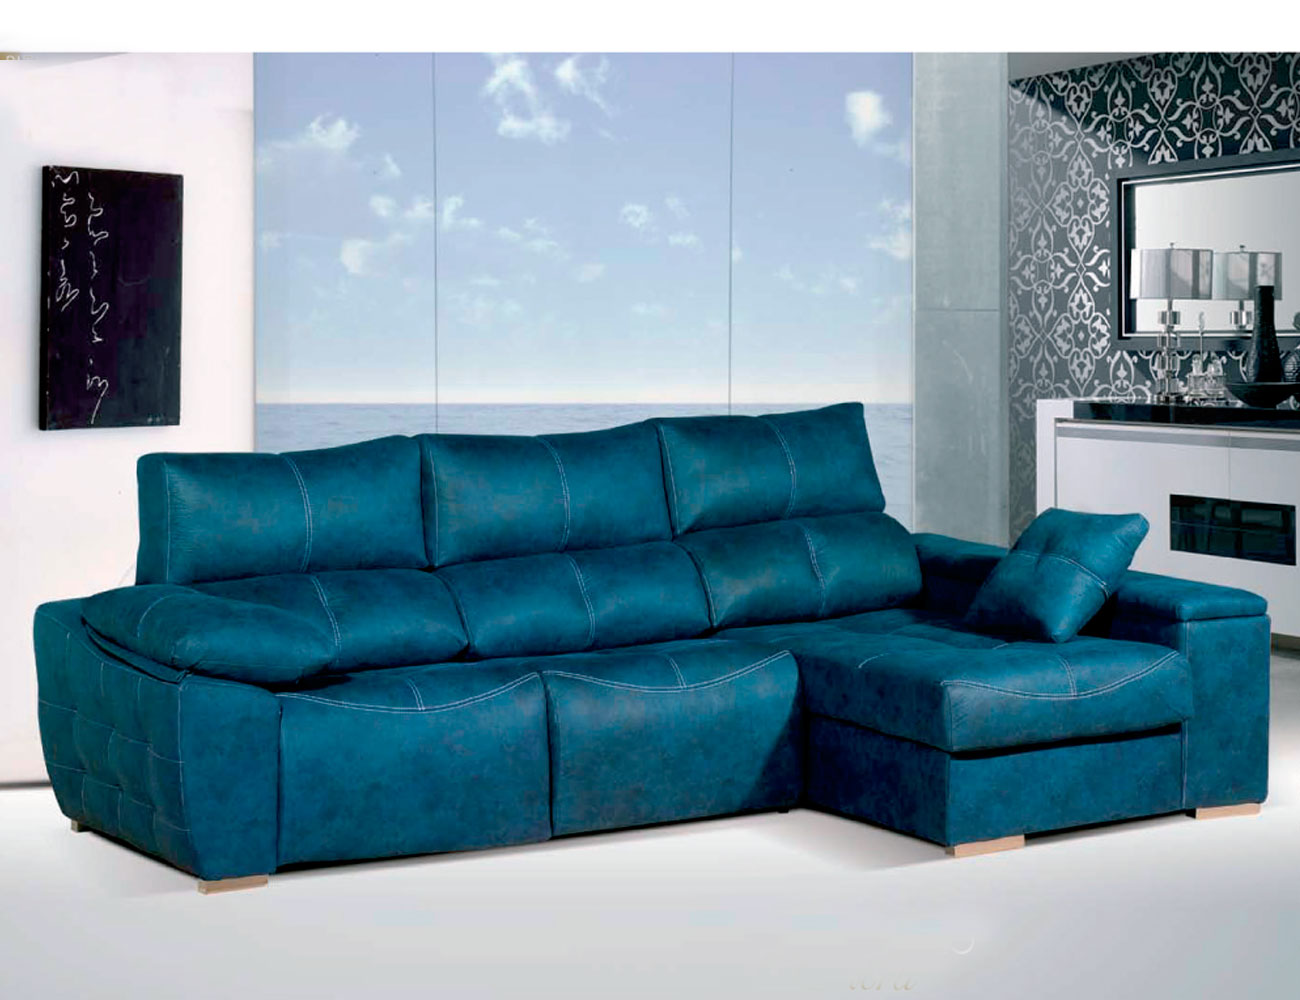 Sofa chaiselongue relax 2 motores anti manchas turquesa10